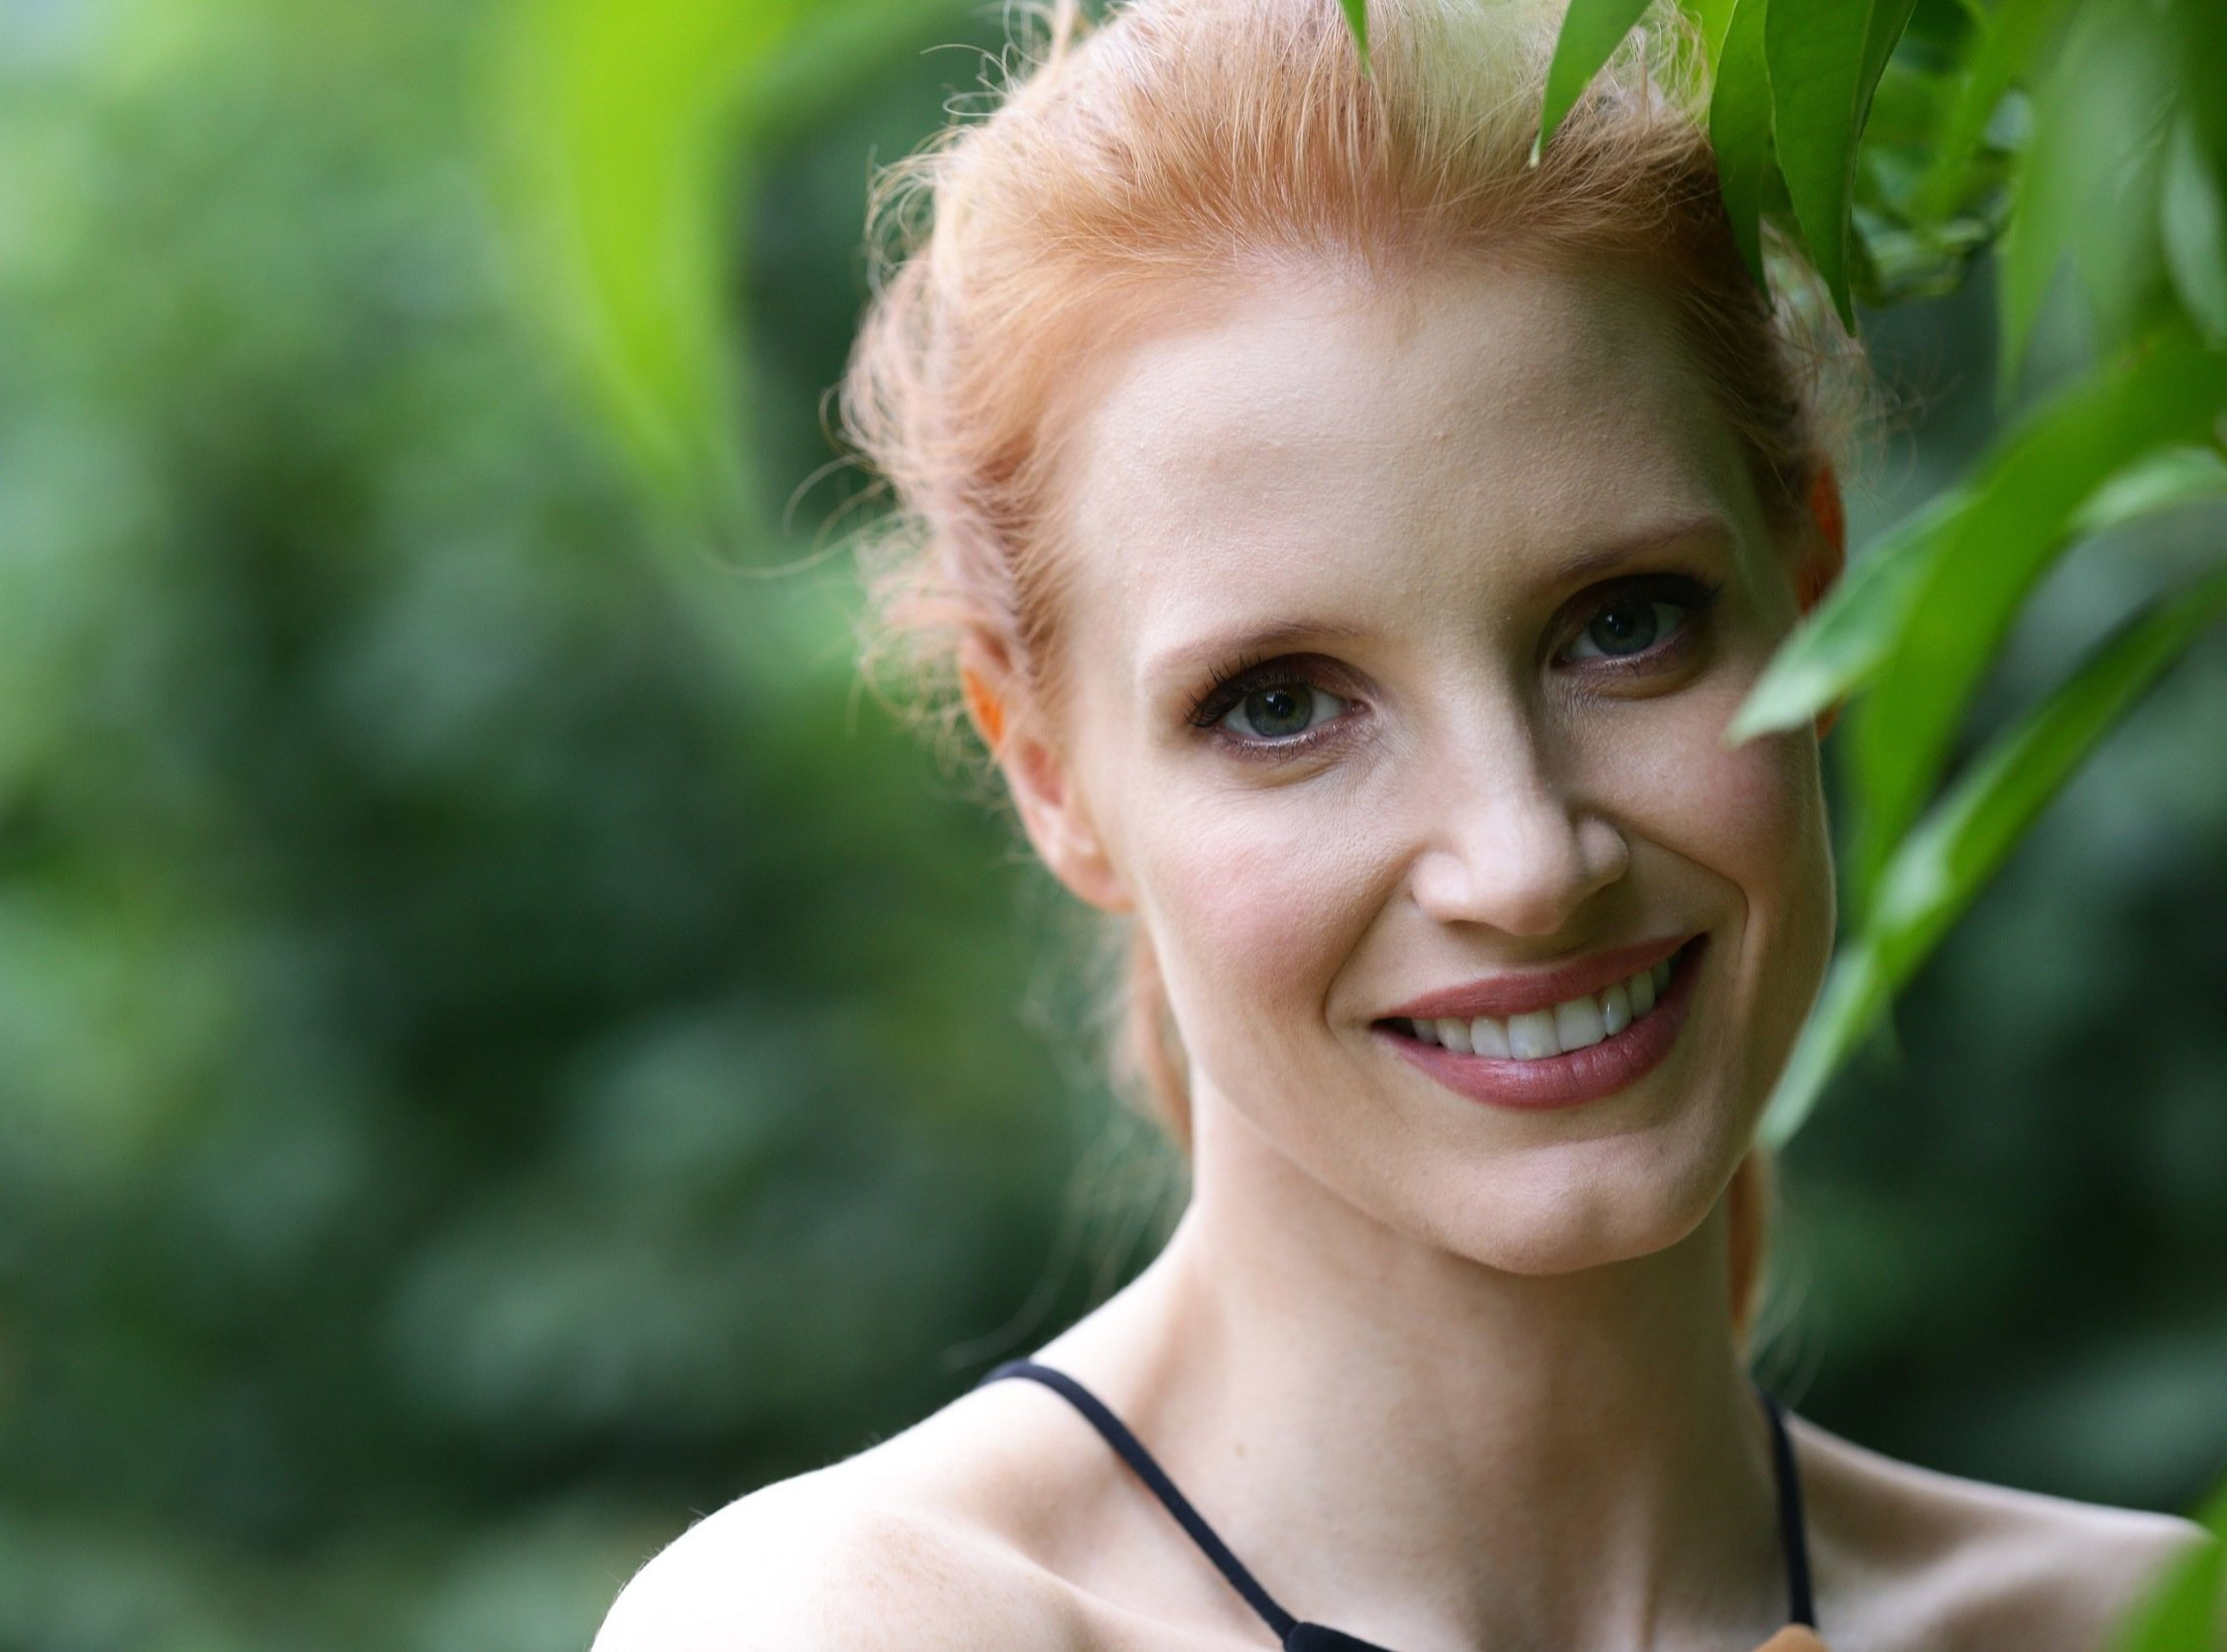 Jessica Chastain by Vittorio Zunino Celotto at the 2013 Giffoni Film Festival on July 21, 2013 in Giffoni Valle Piana, Italy